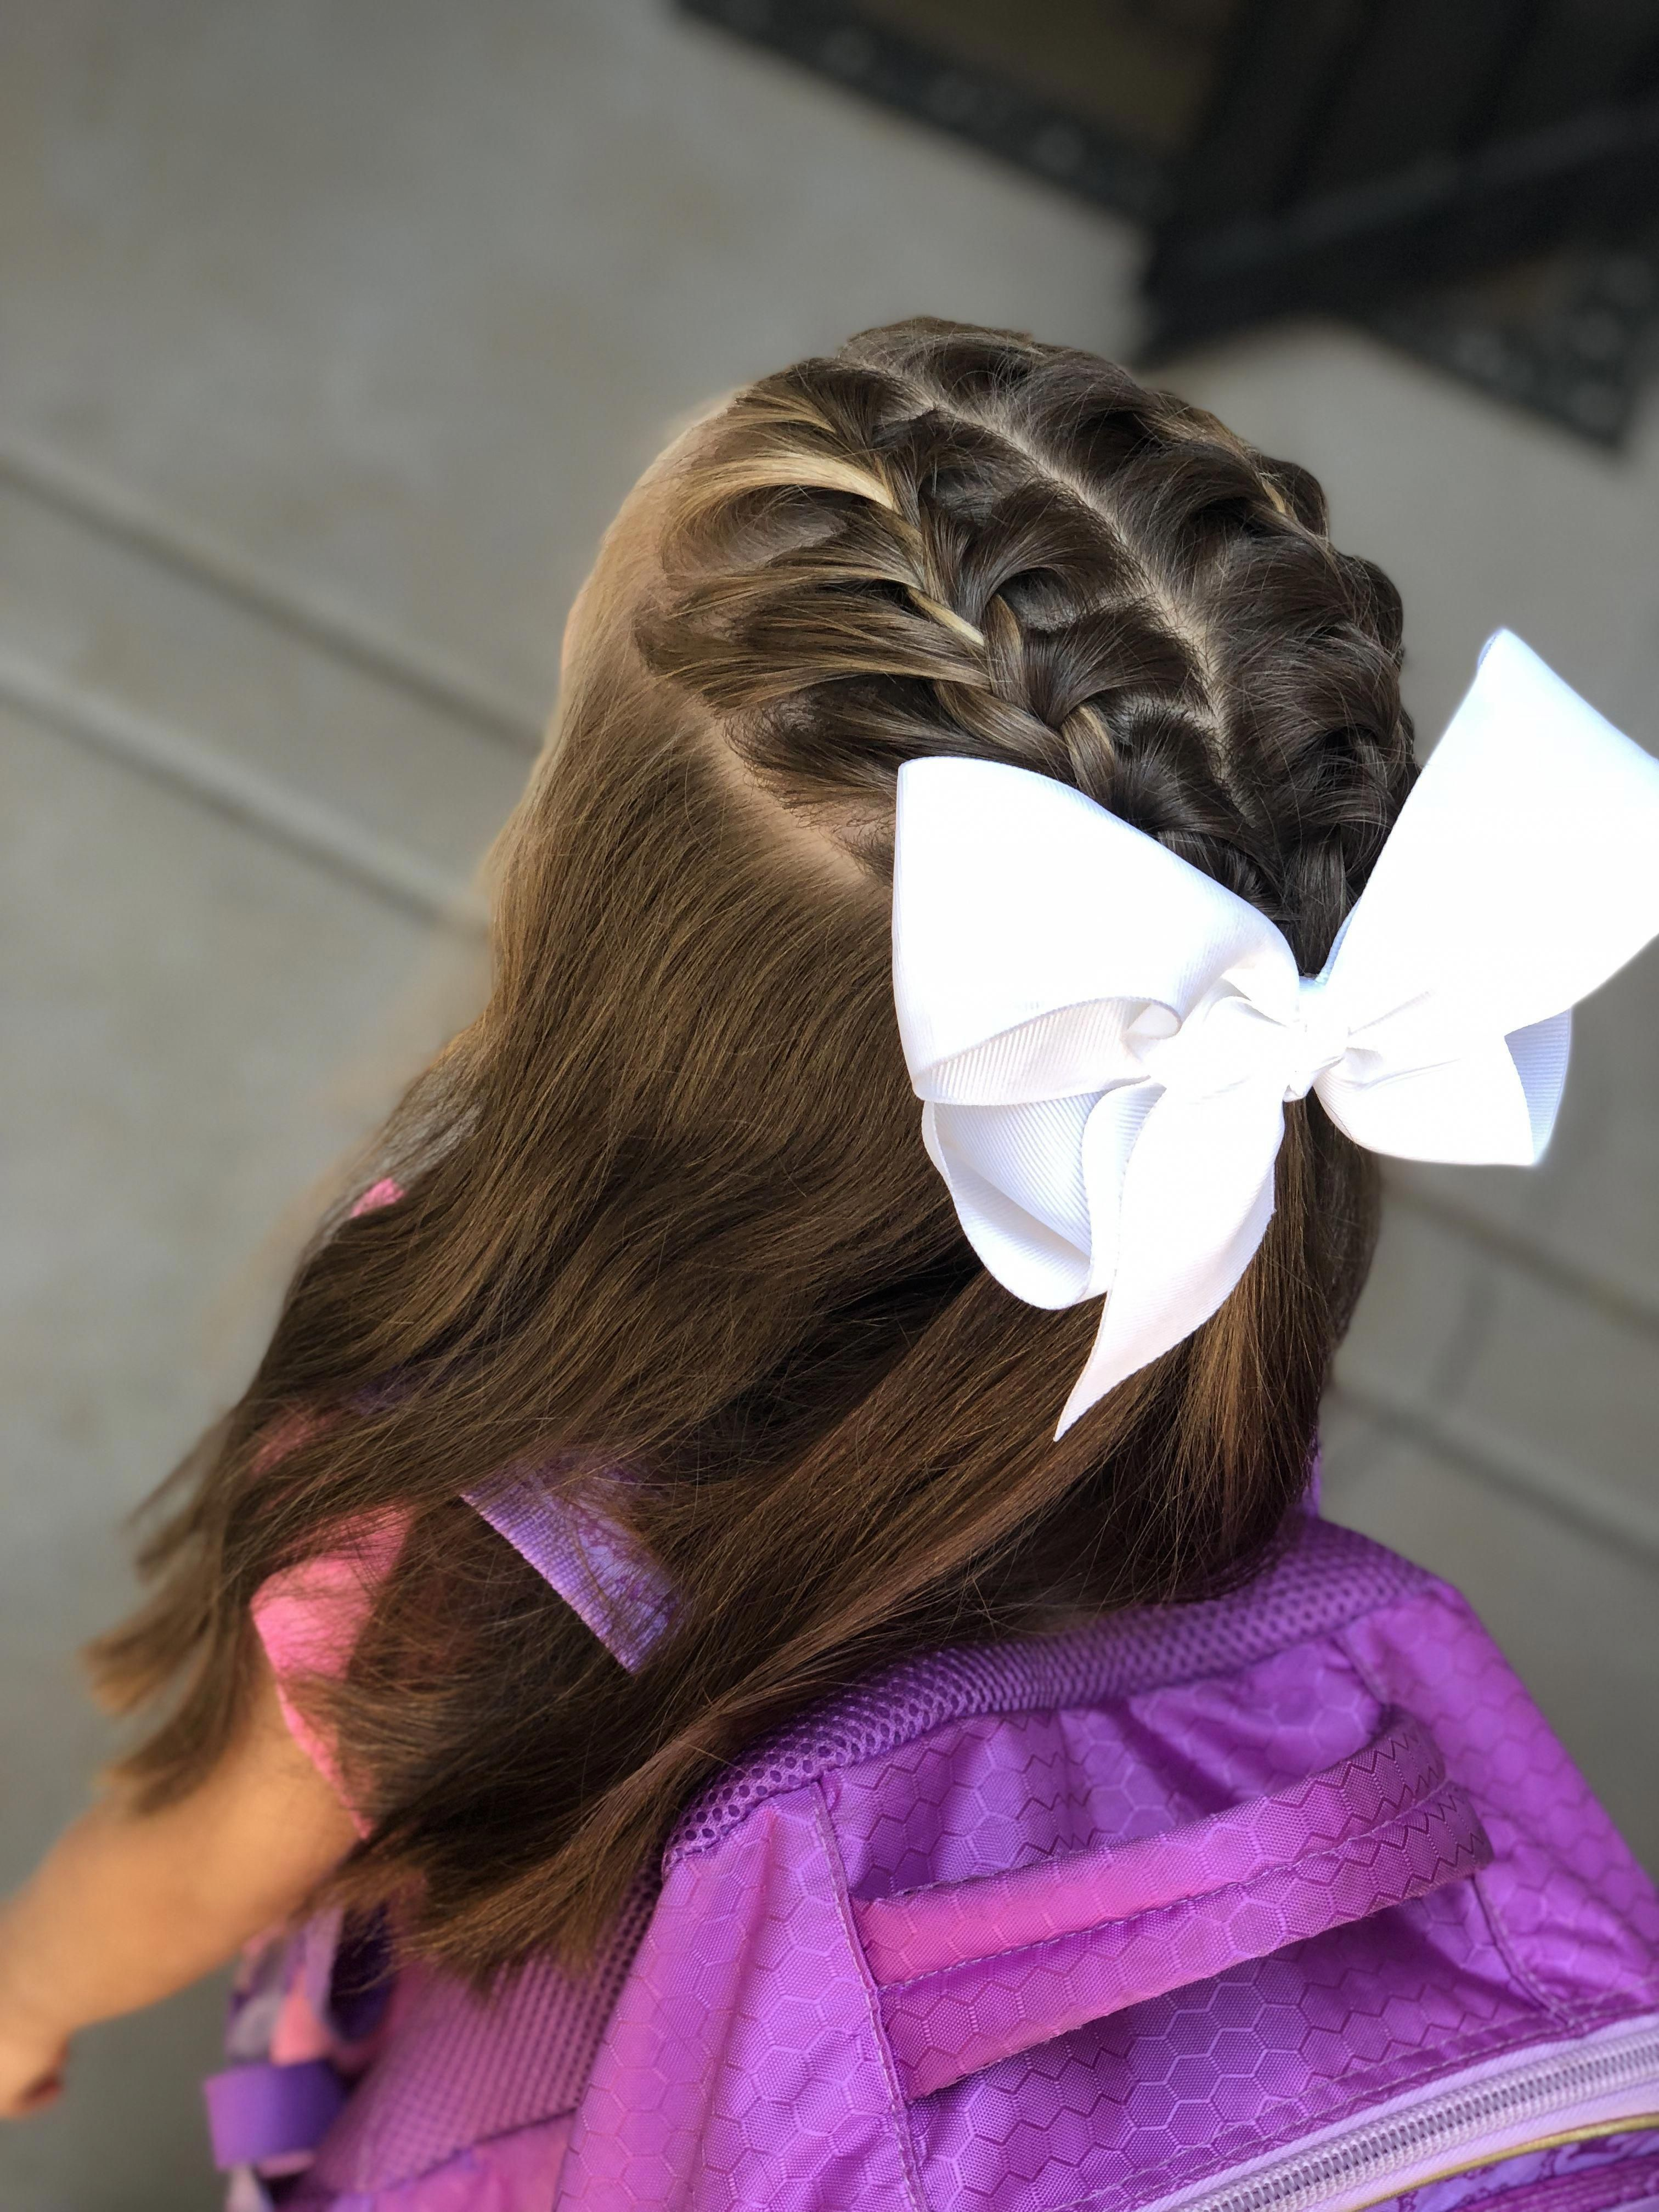 Small Girl Hair Popular Short Hairstyles For Women Hairstyle For 3 Years Old Girl 20190327 Girl Hair Dos Flower Girl Hairstyles Kids Hairstyles Girls